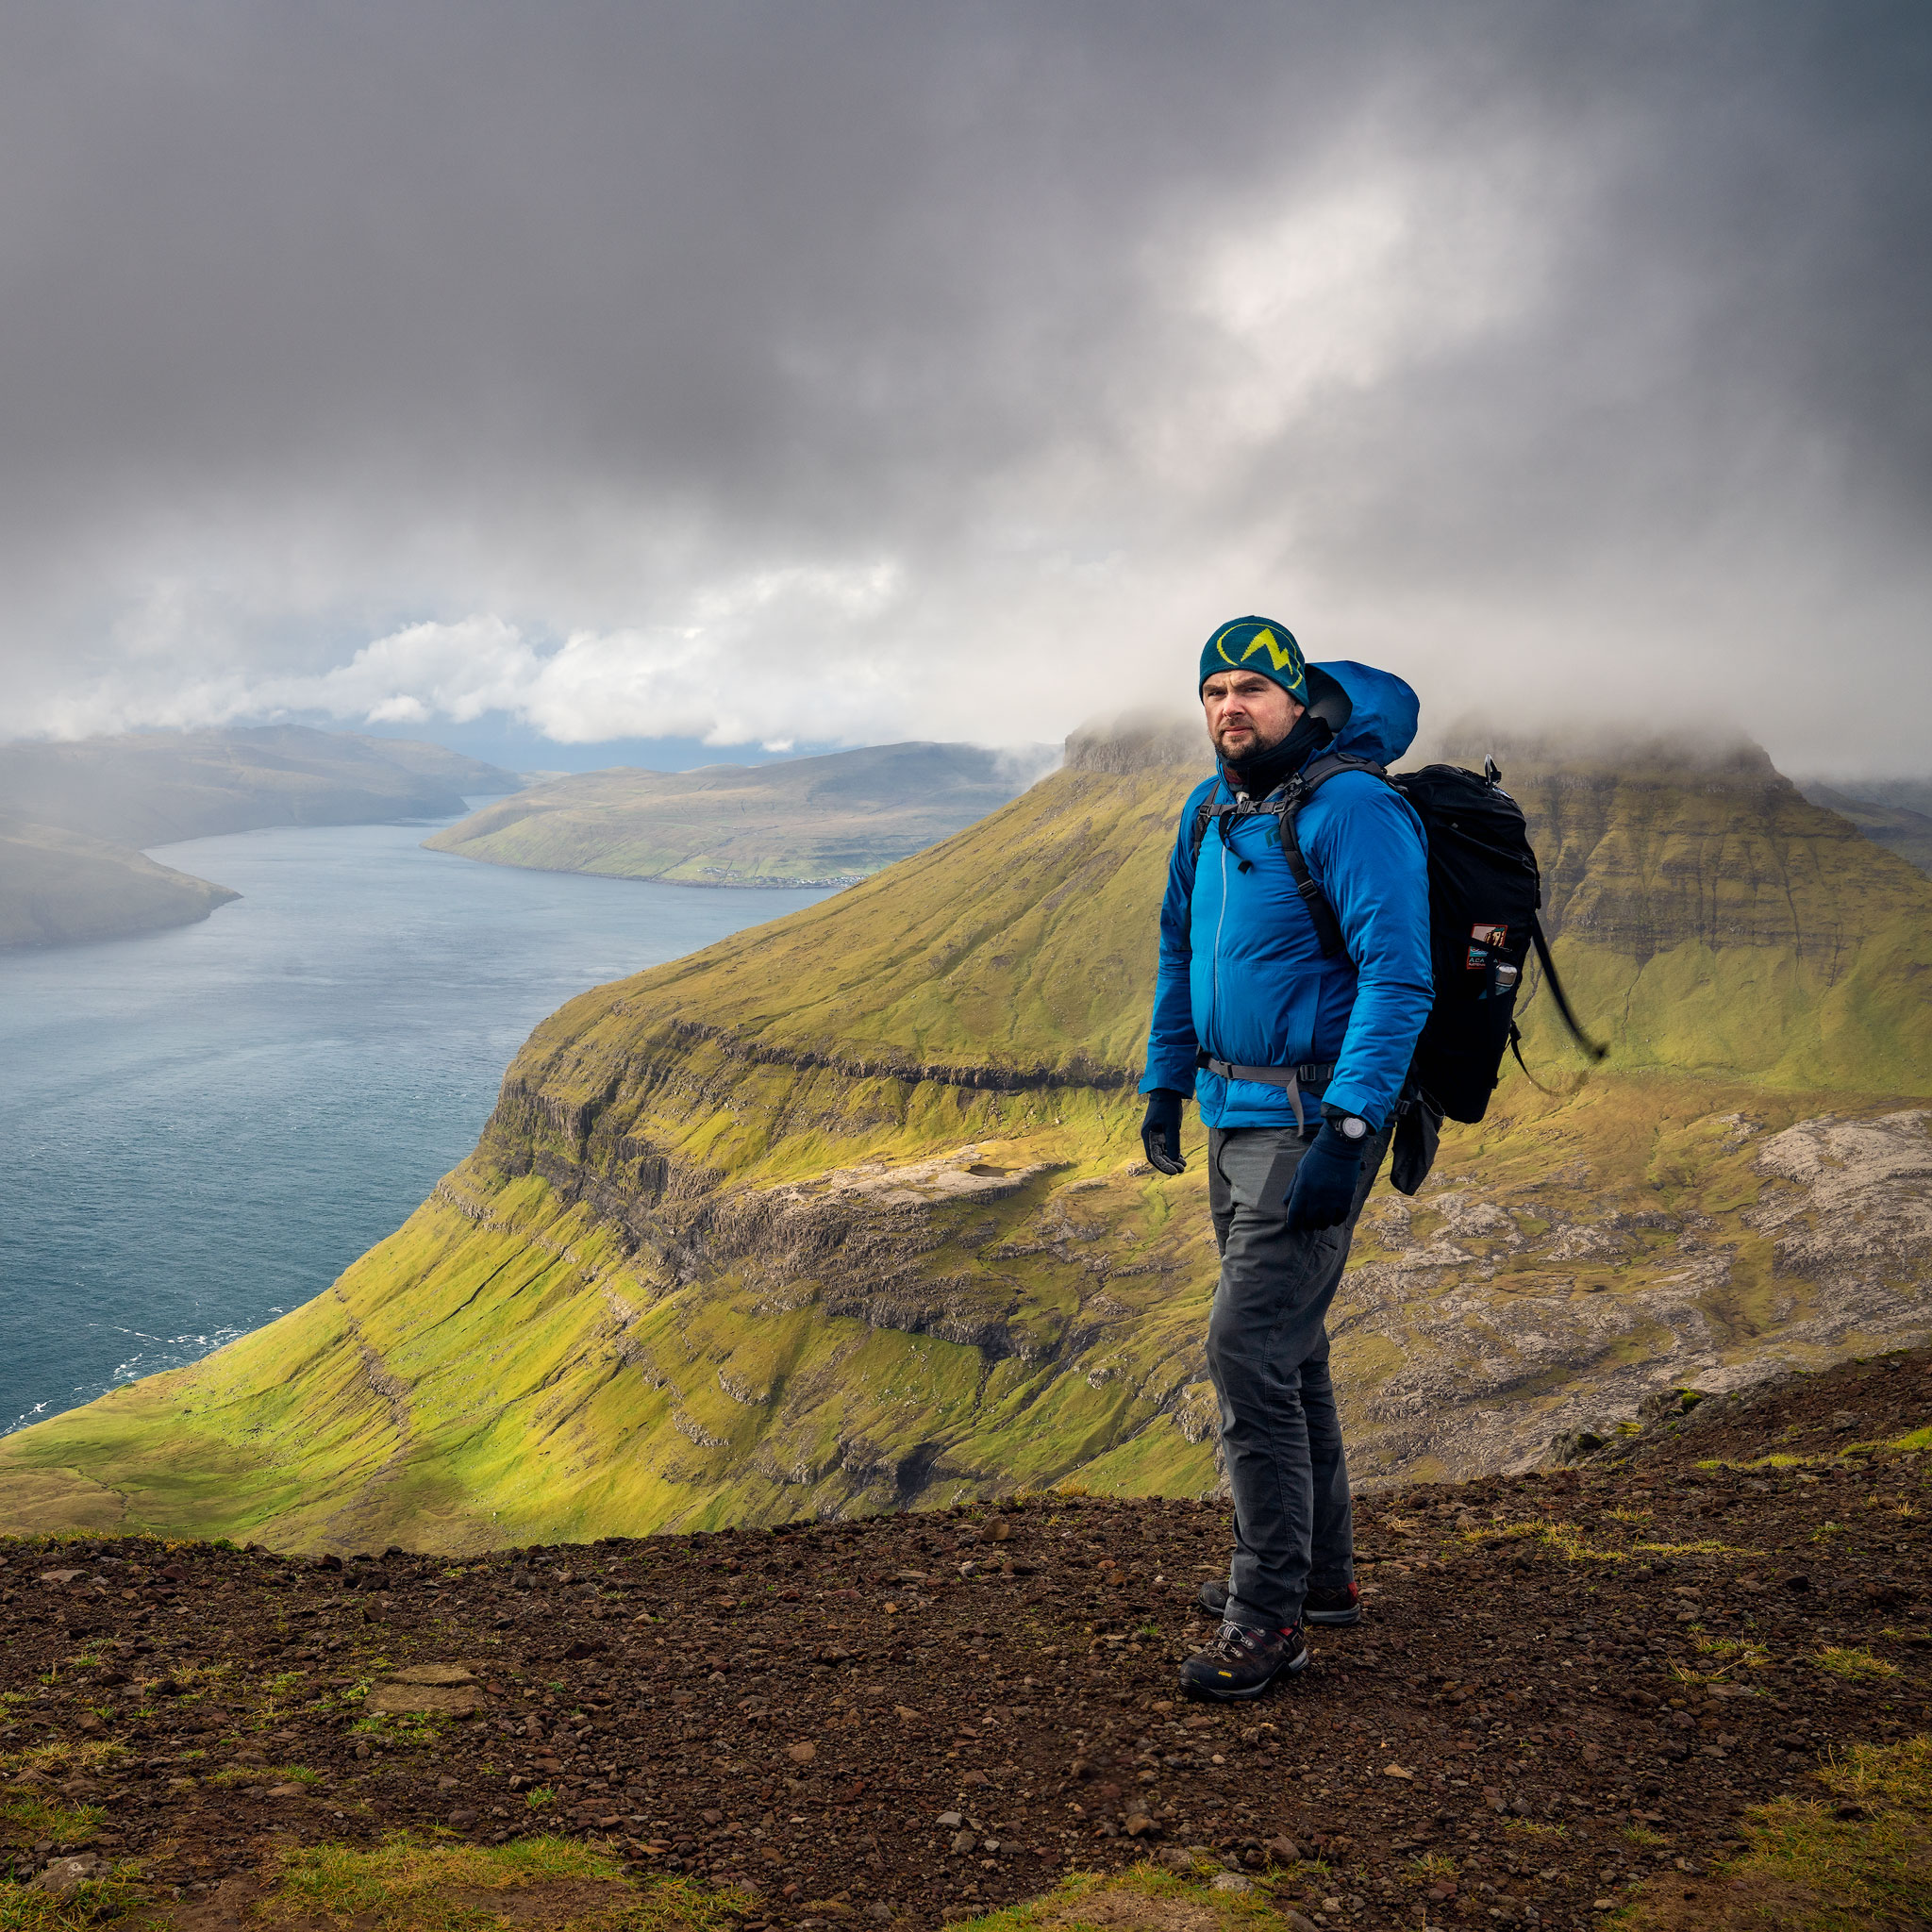 Me-on-Faroe-Island-Hill-copy.jpg